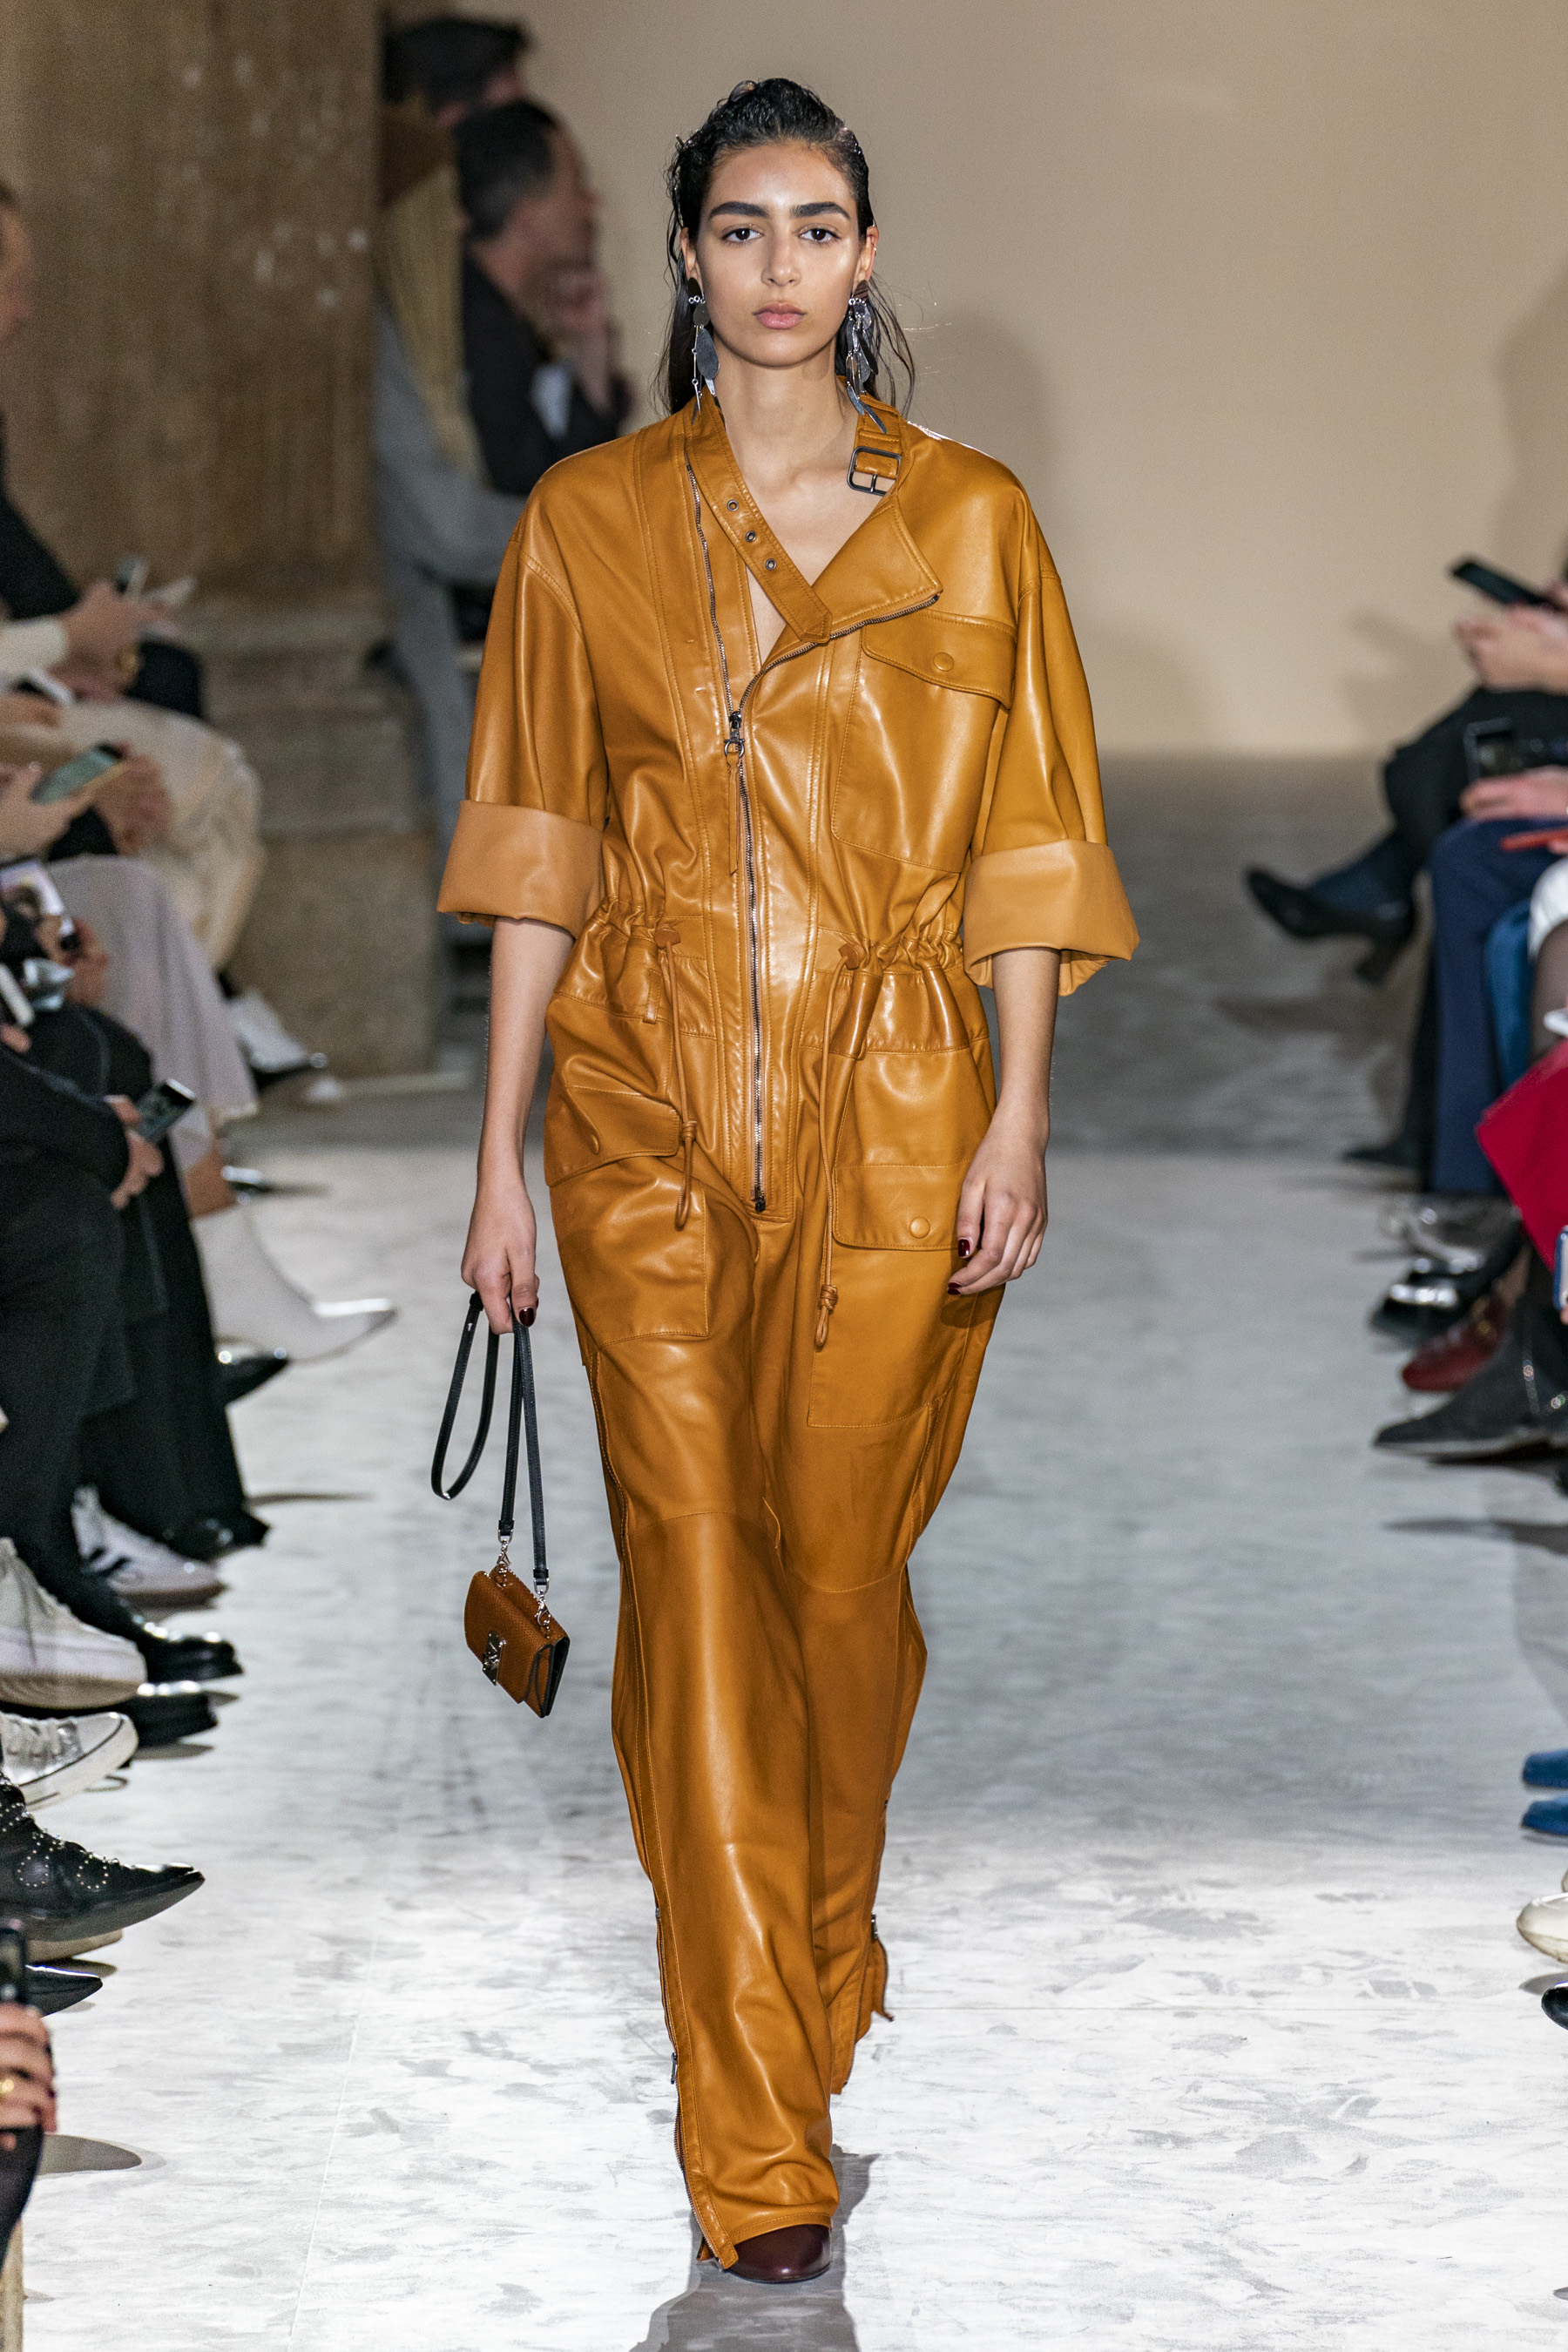 Milan Top 10 Fall 2019 Fashion Shows